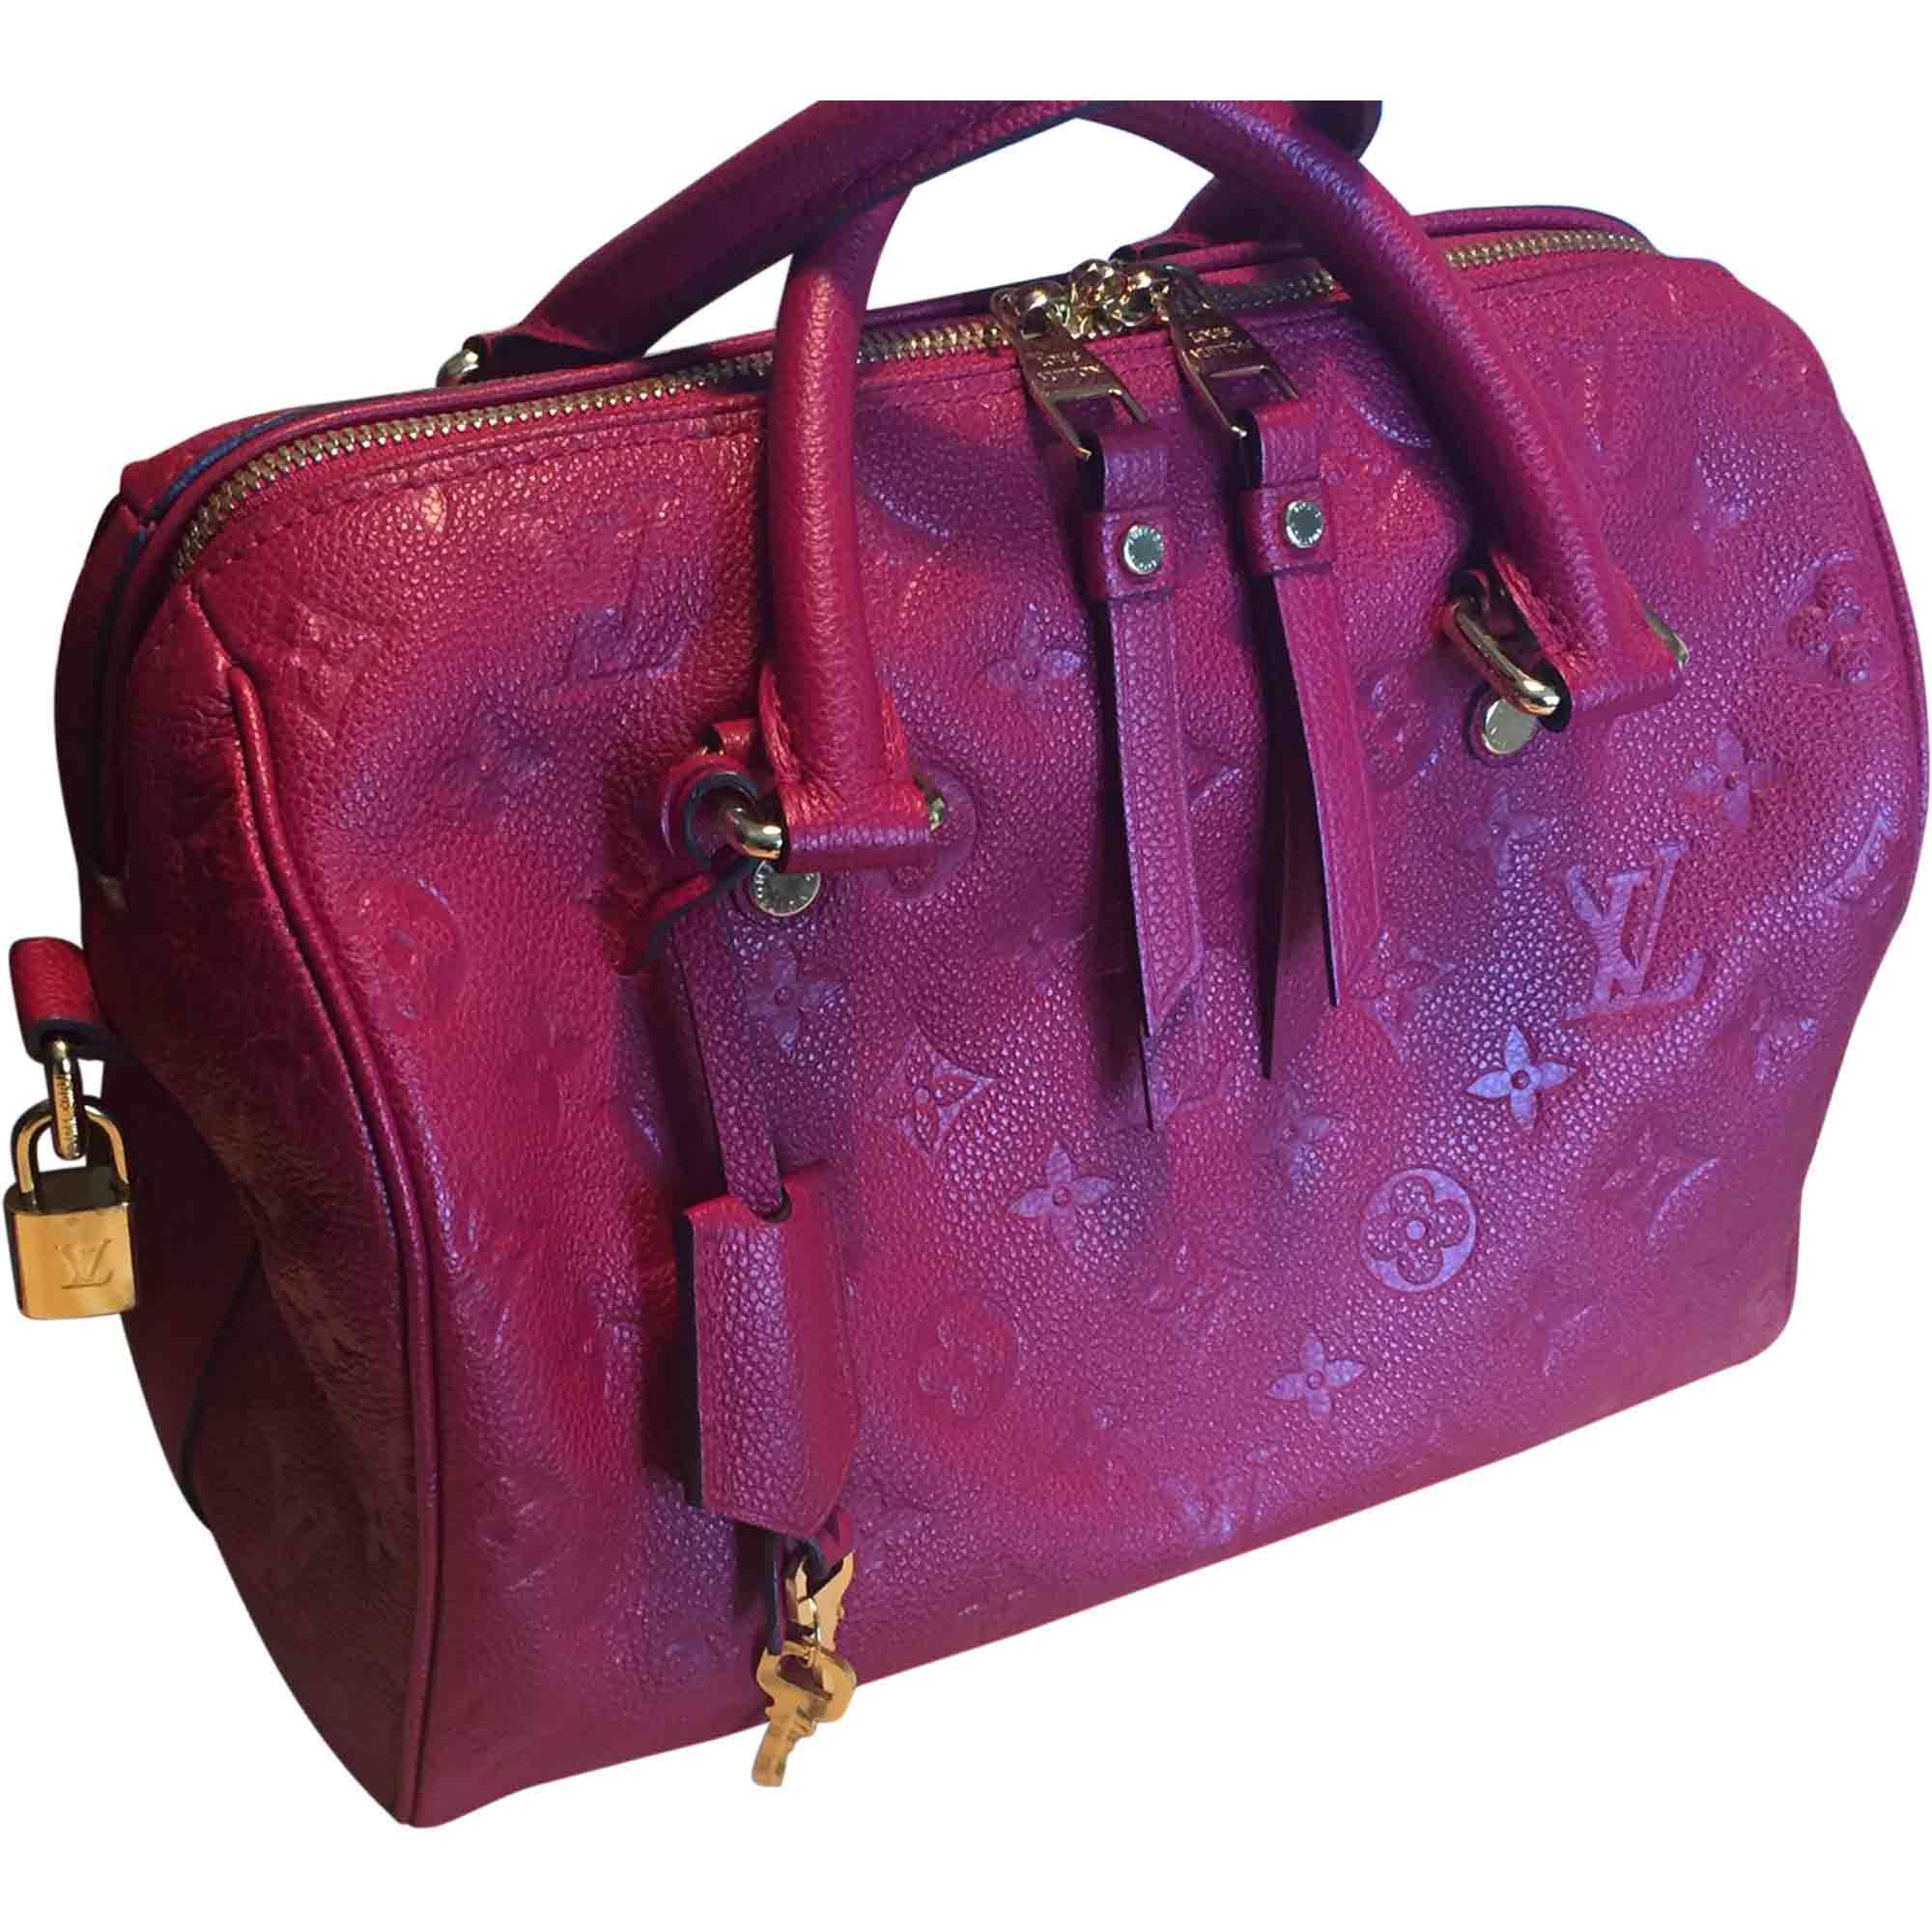 18860cc9ee Borsa a tracolla in pelle LOUIS VUITTON Speedy Rosso, bordeaux